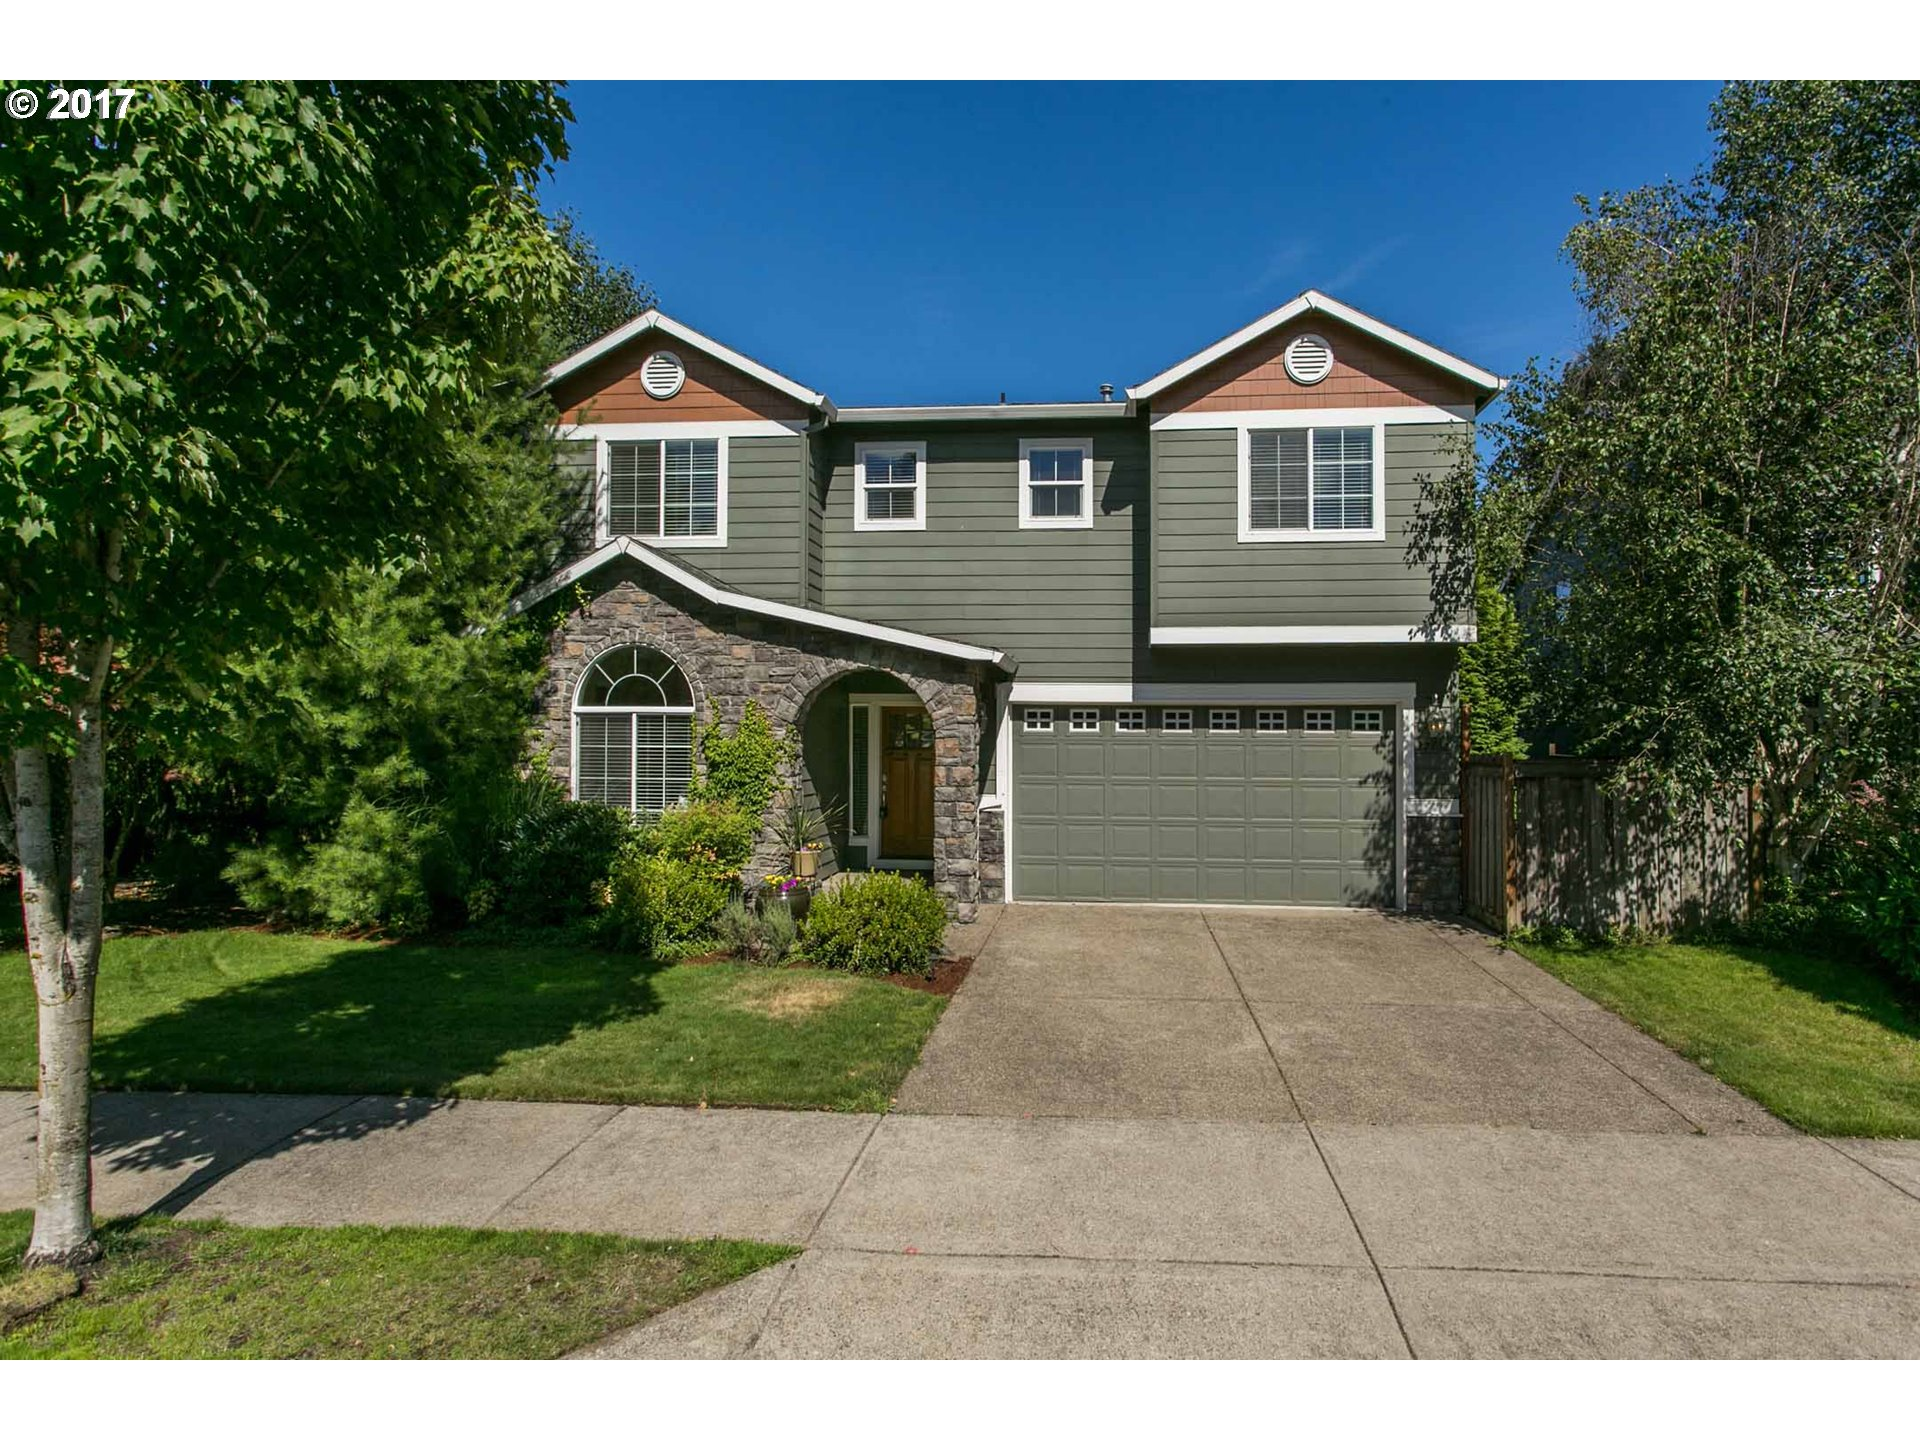 22762 SW 106TH AVE, Tualatin, OR 97062